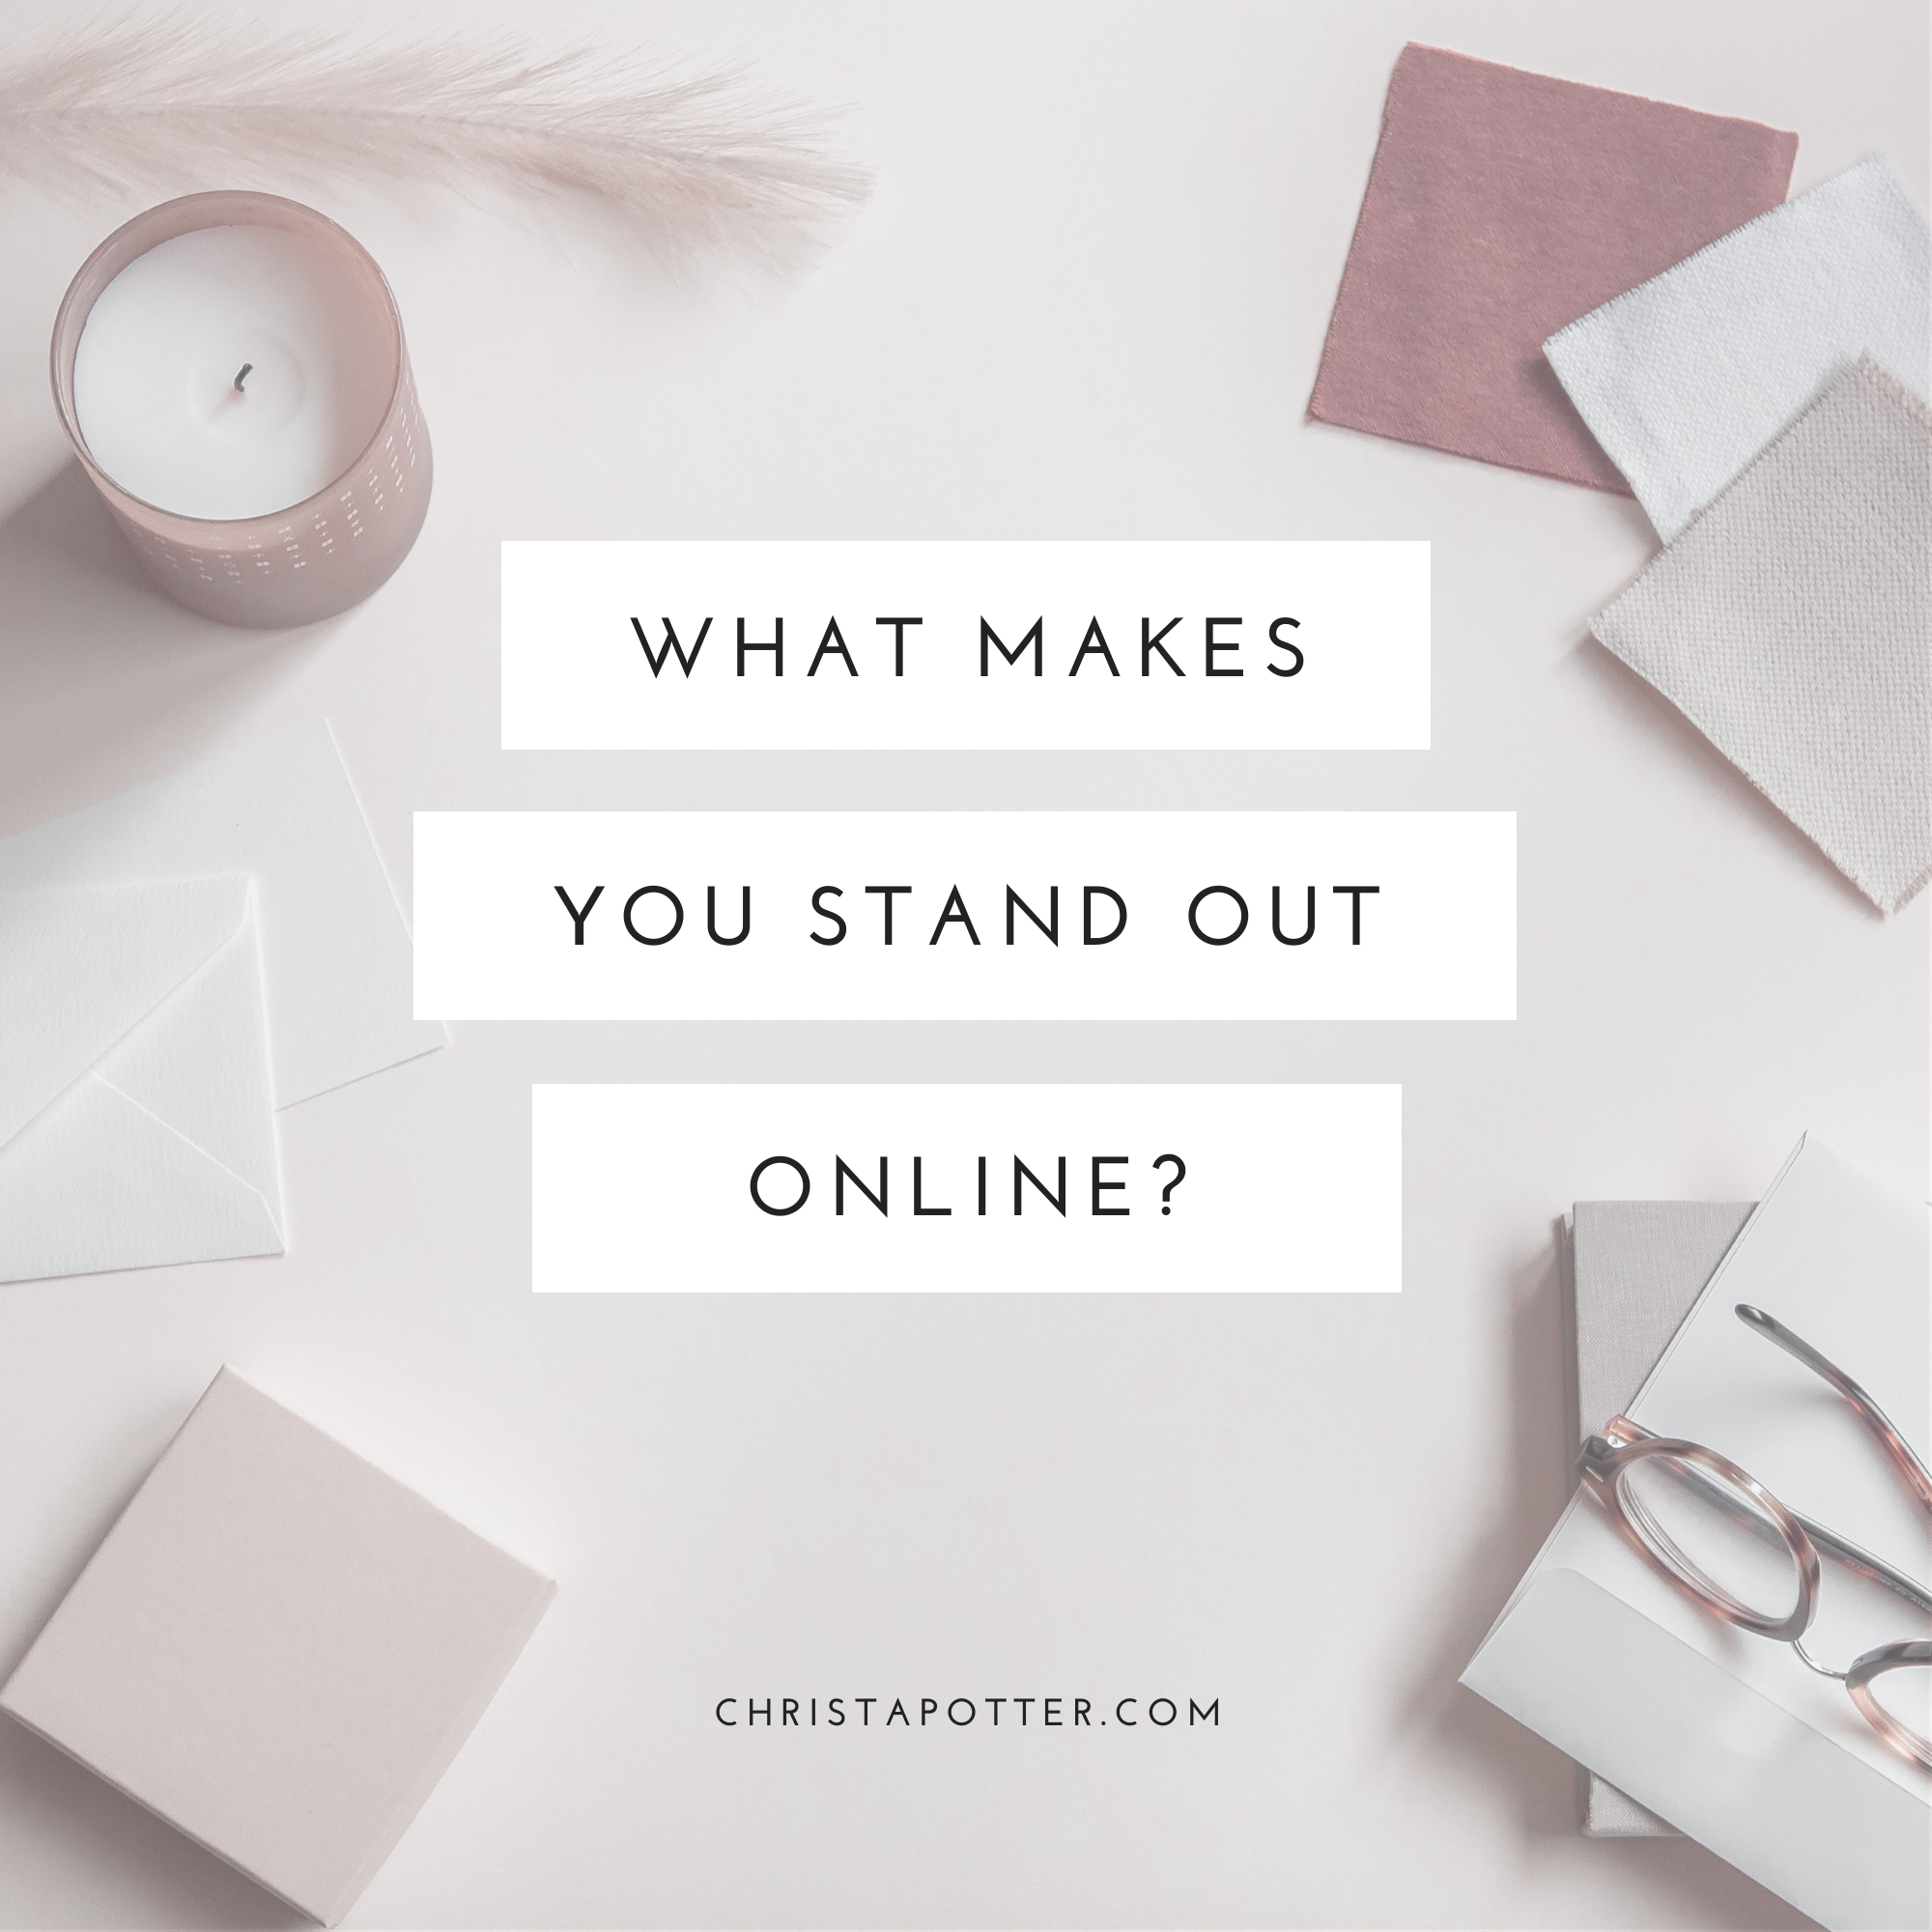 What Makes You Stand Out In Your Industry